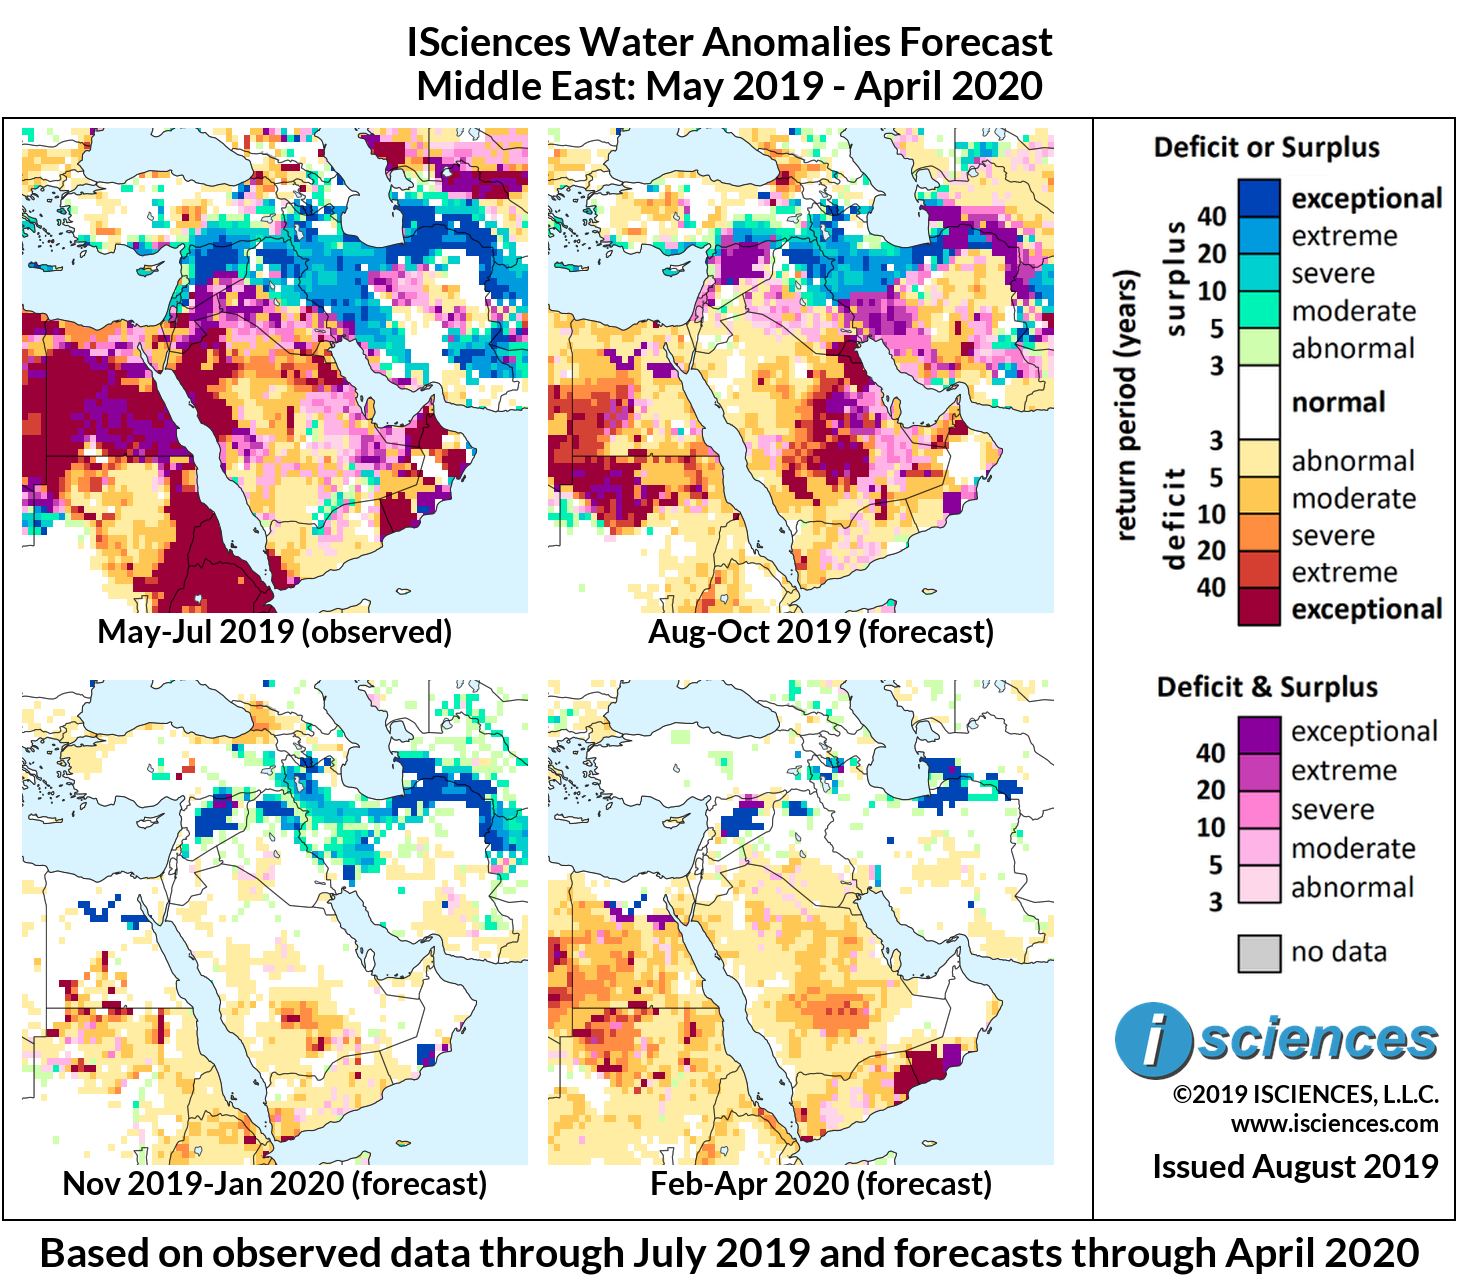 ISciences_Middle_East_Composite_Adjusted_201905-202004_3mo_panel.png